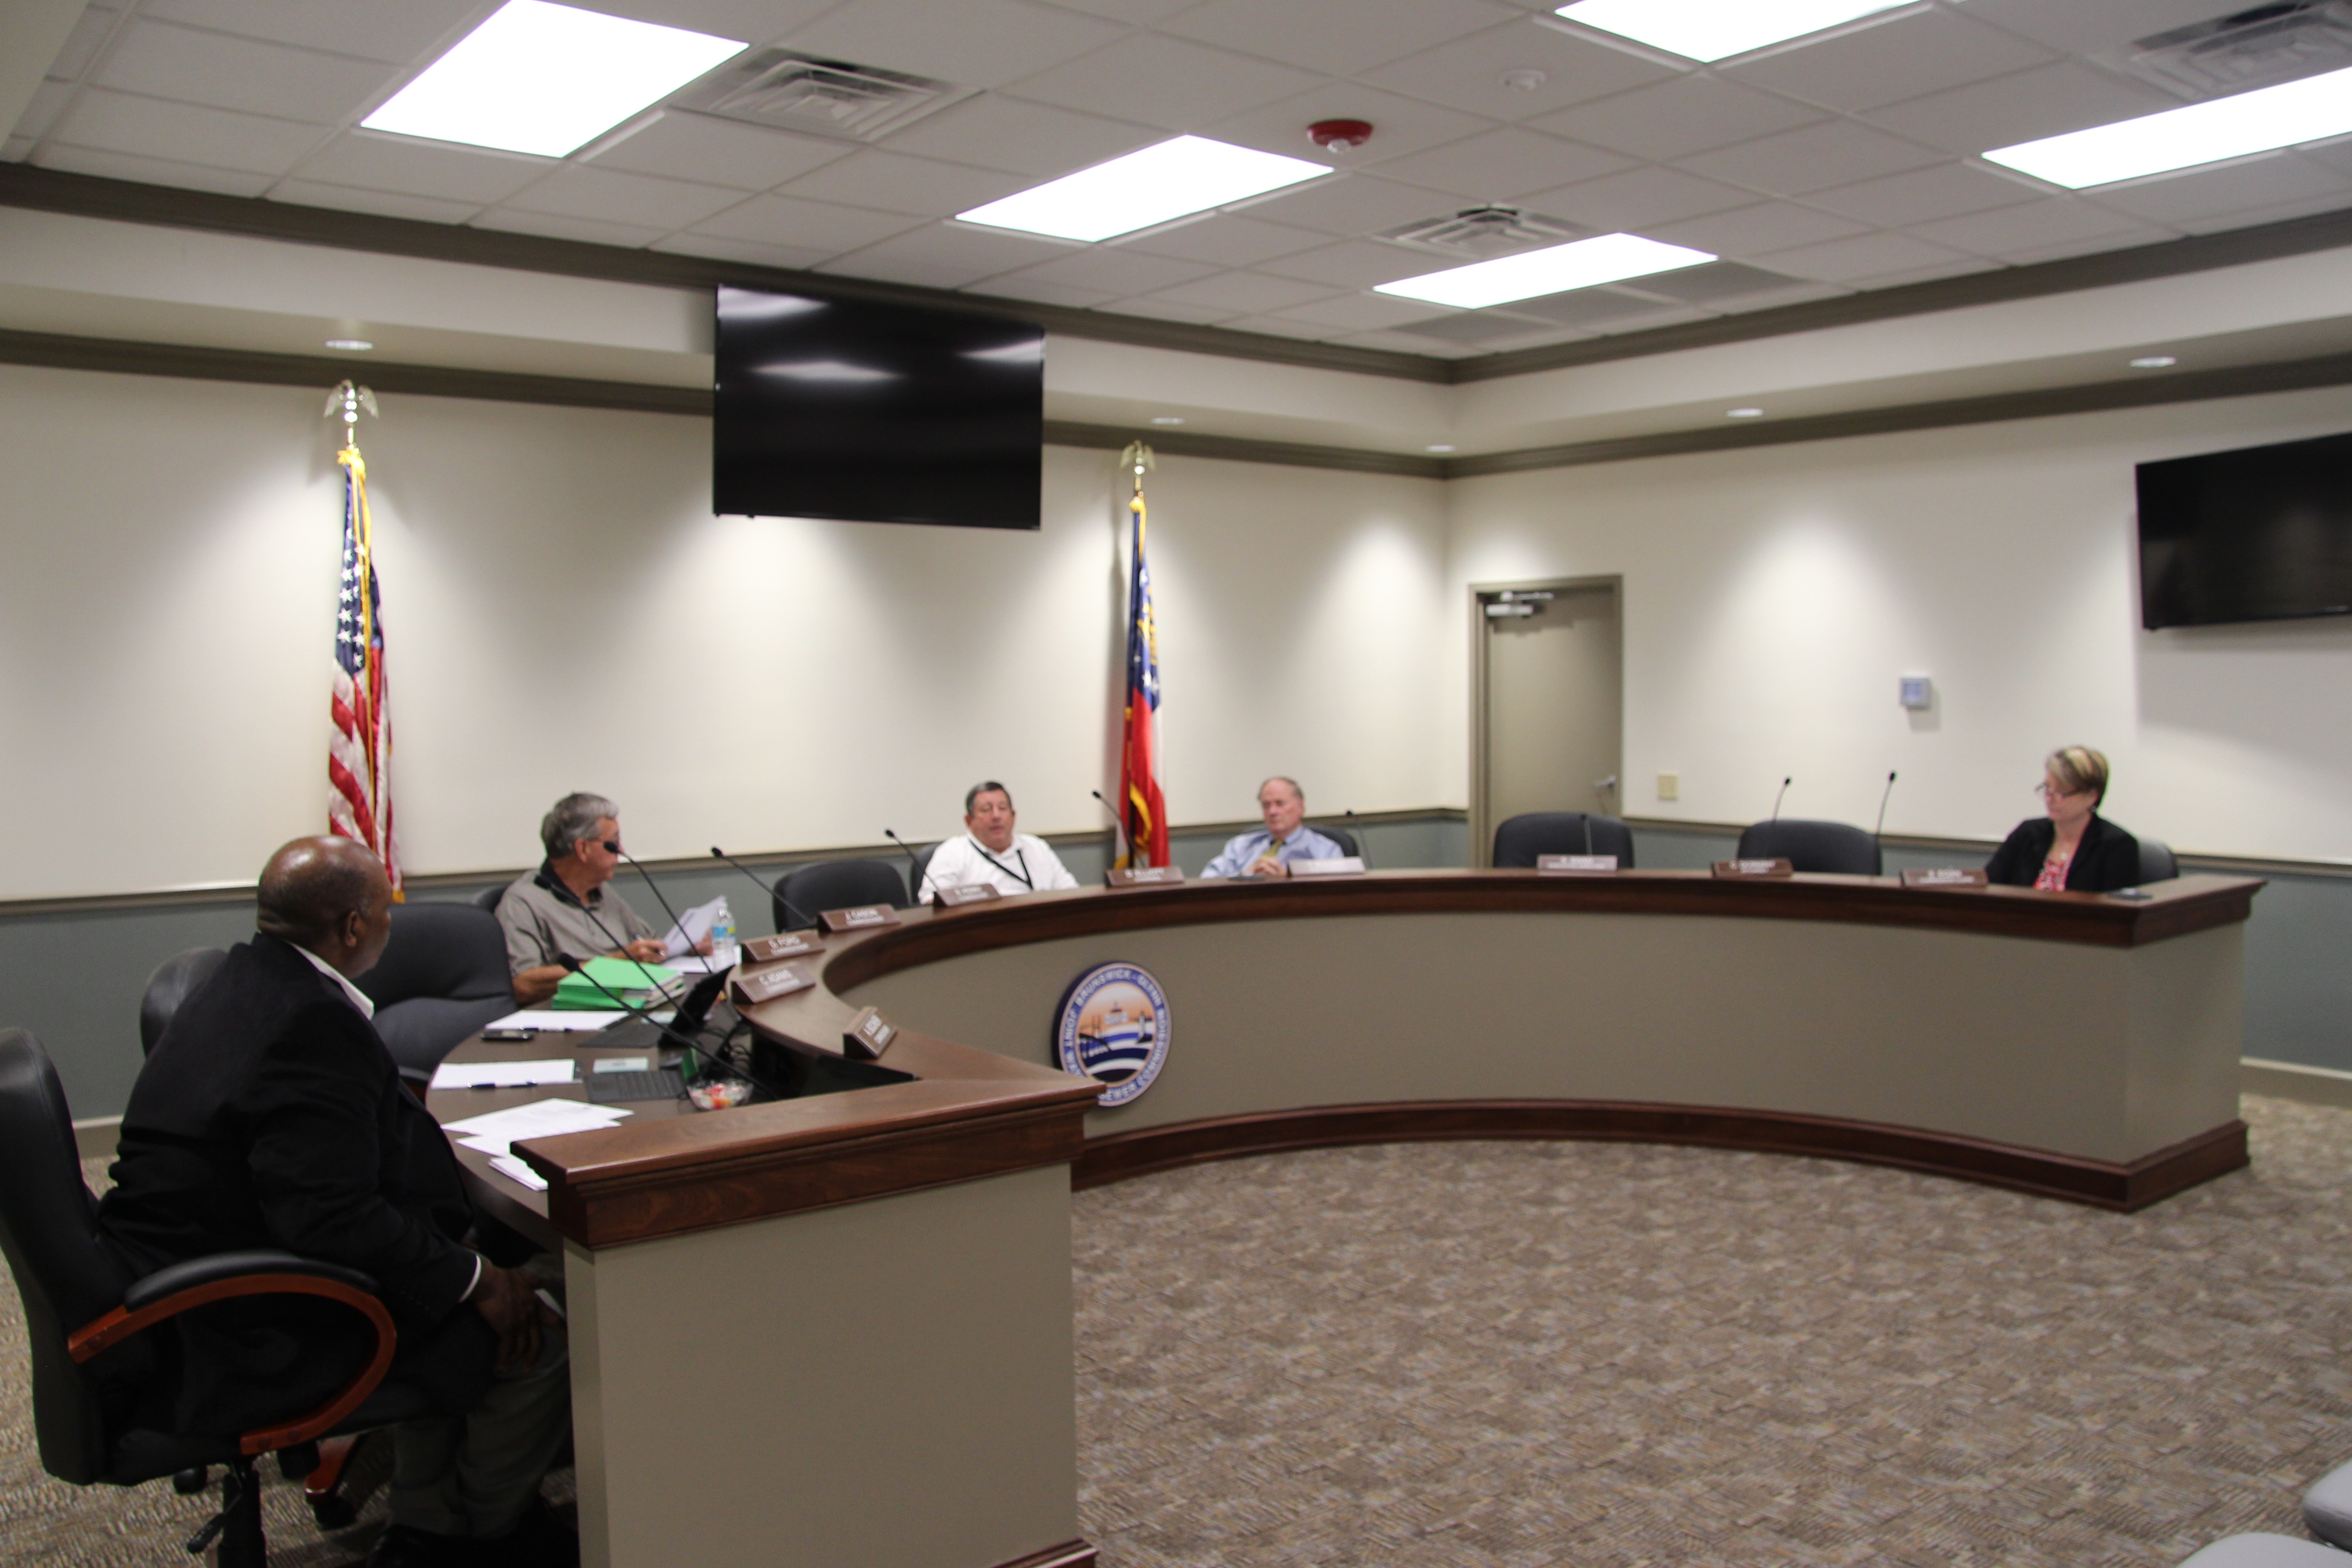 Human_Resources_Committee_Meeting-November_5,2015